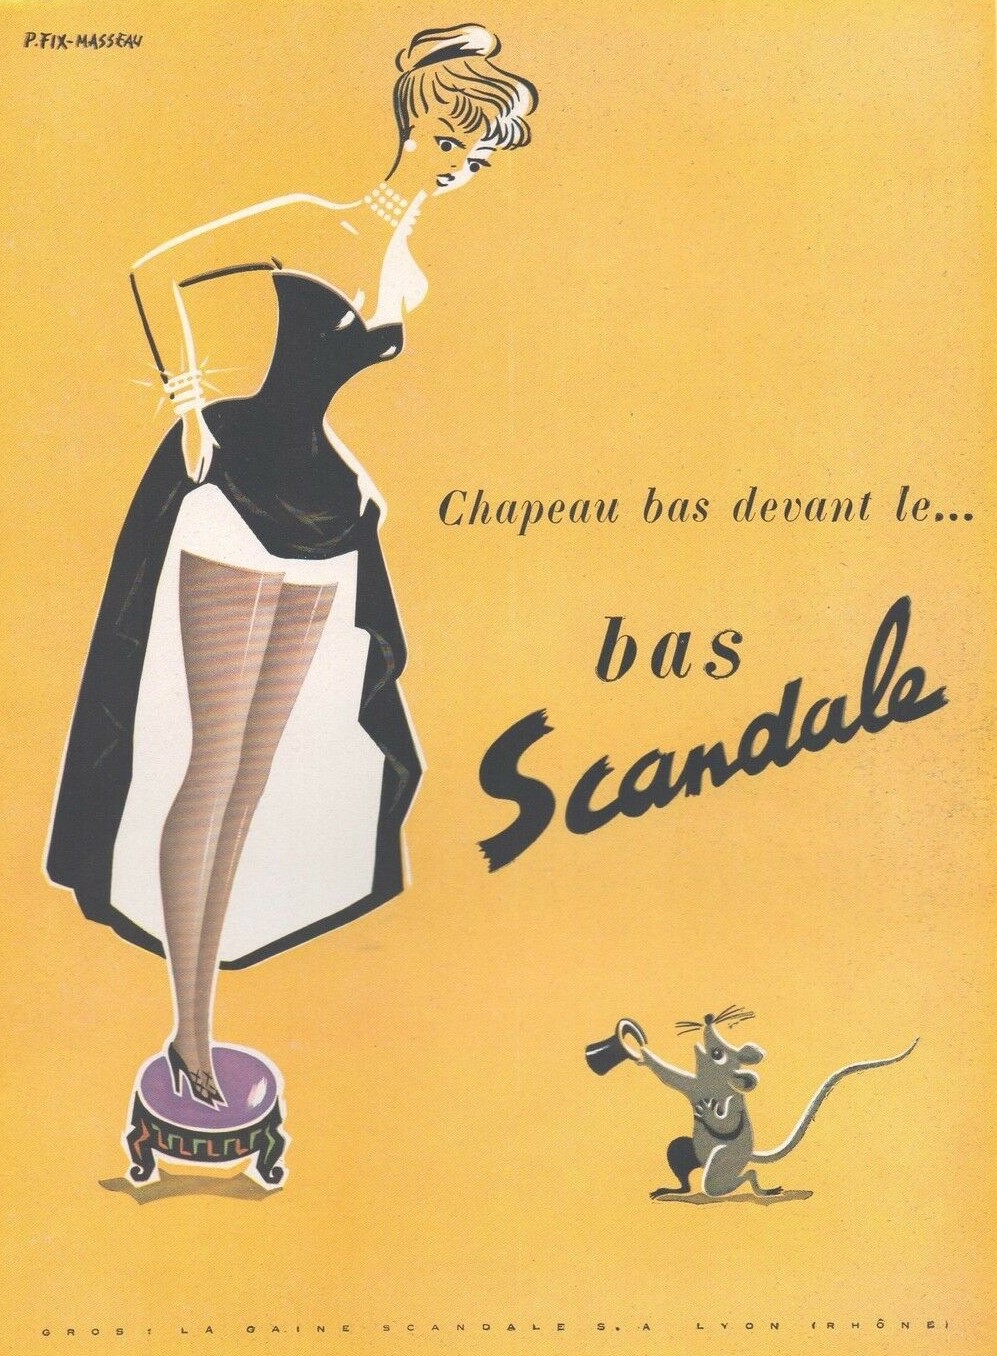 Scandale 1951 Pierre Fix Masseau